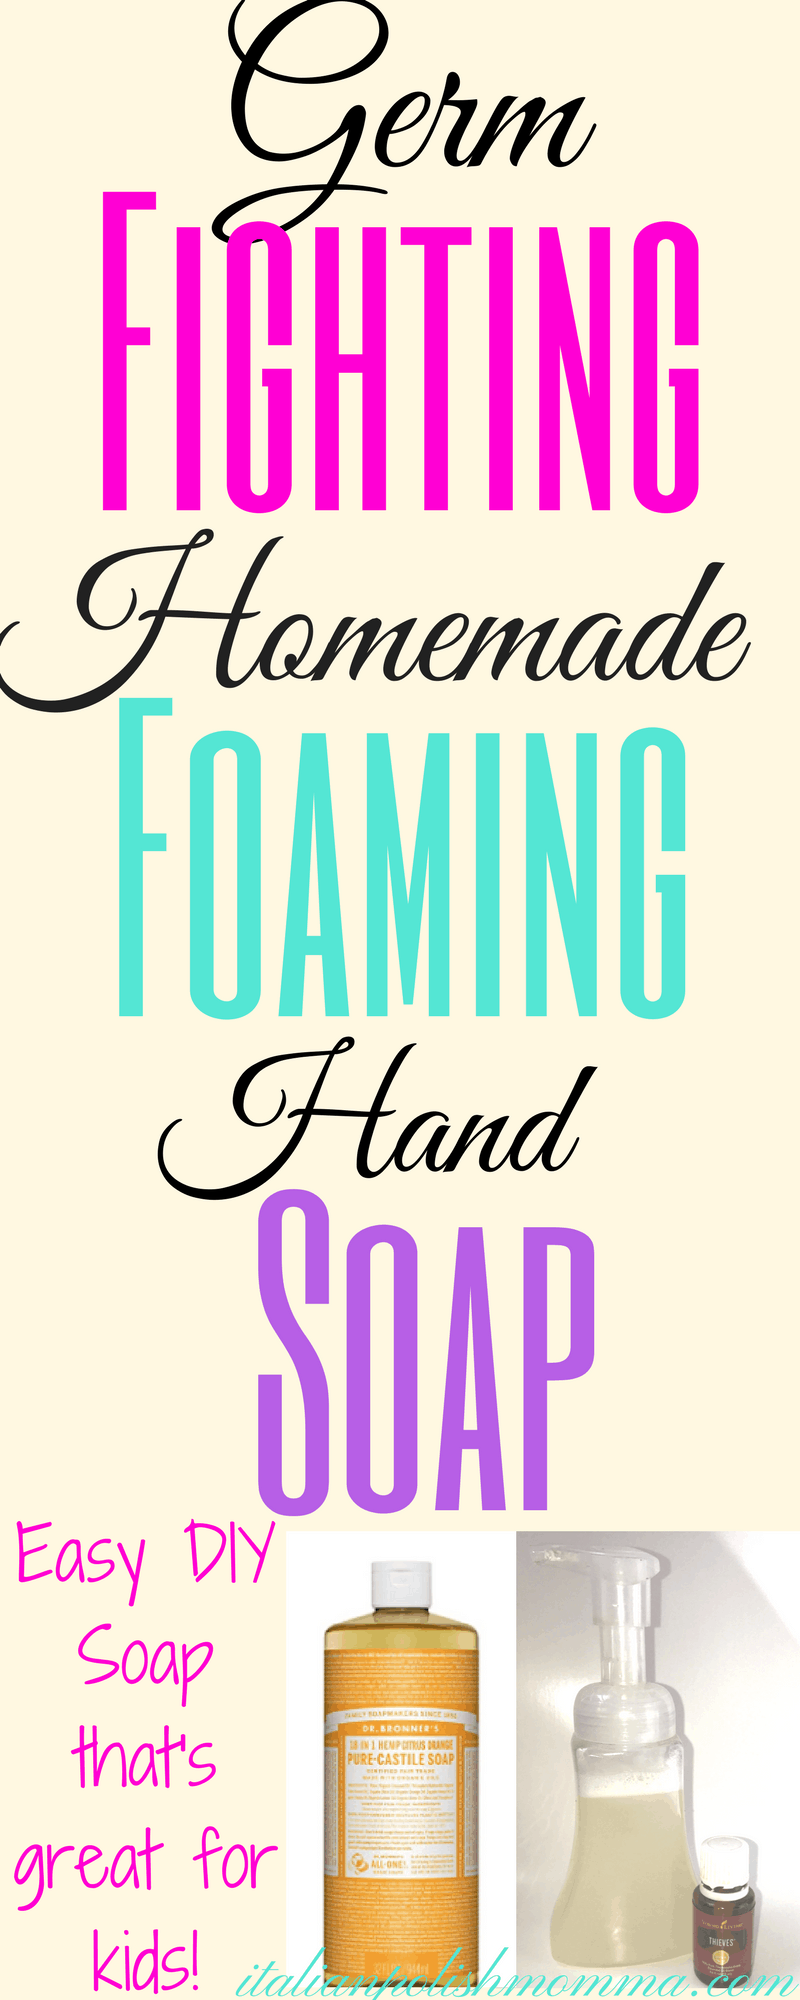 Germ-fighting foaming hand soap